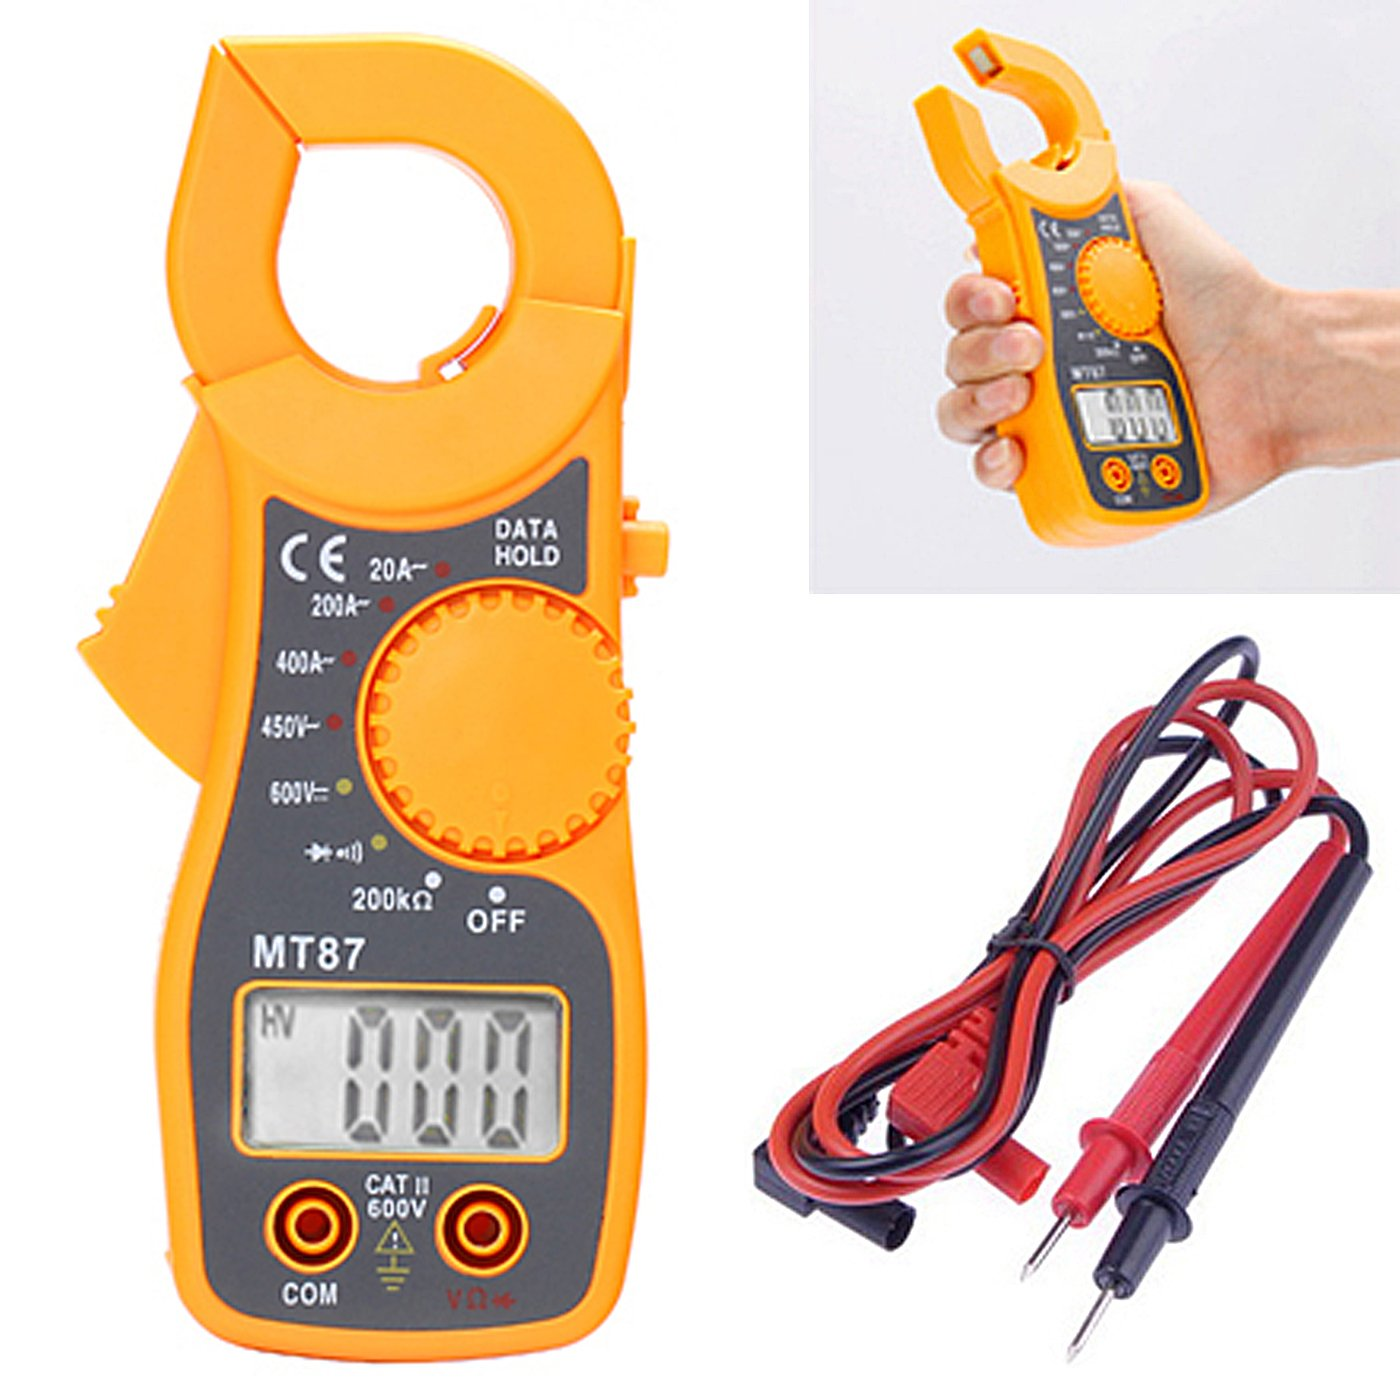 HDE Portable AC/DC Digital Voltage Multimeter Tester Electronic Clamp OHM Amp Meter LCD Display HDE-E51-NEW